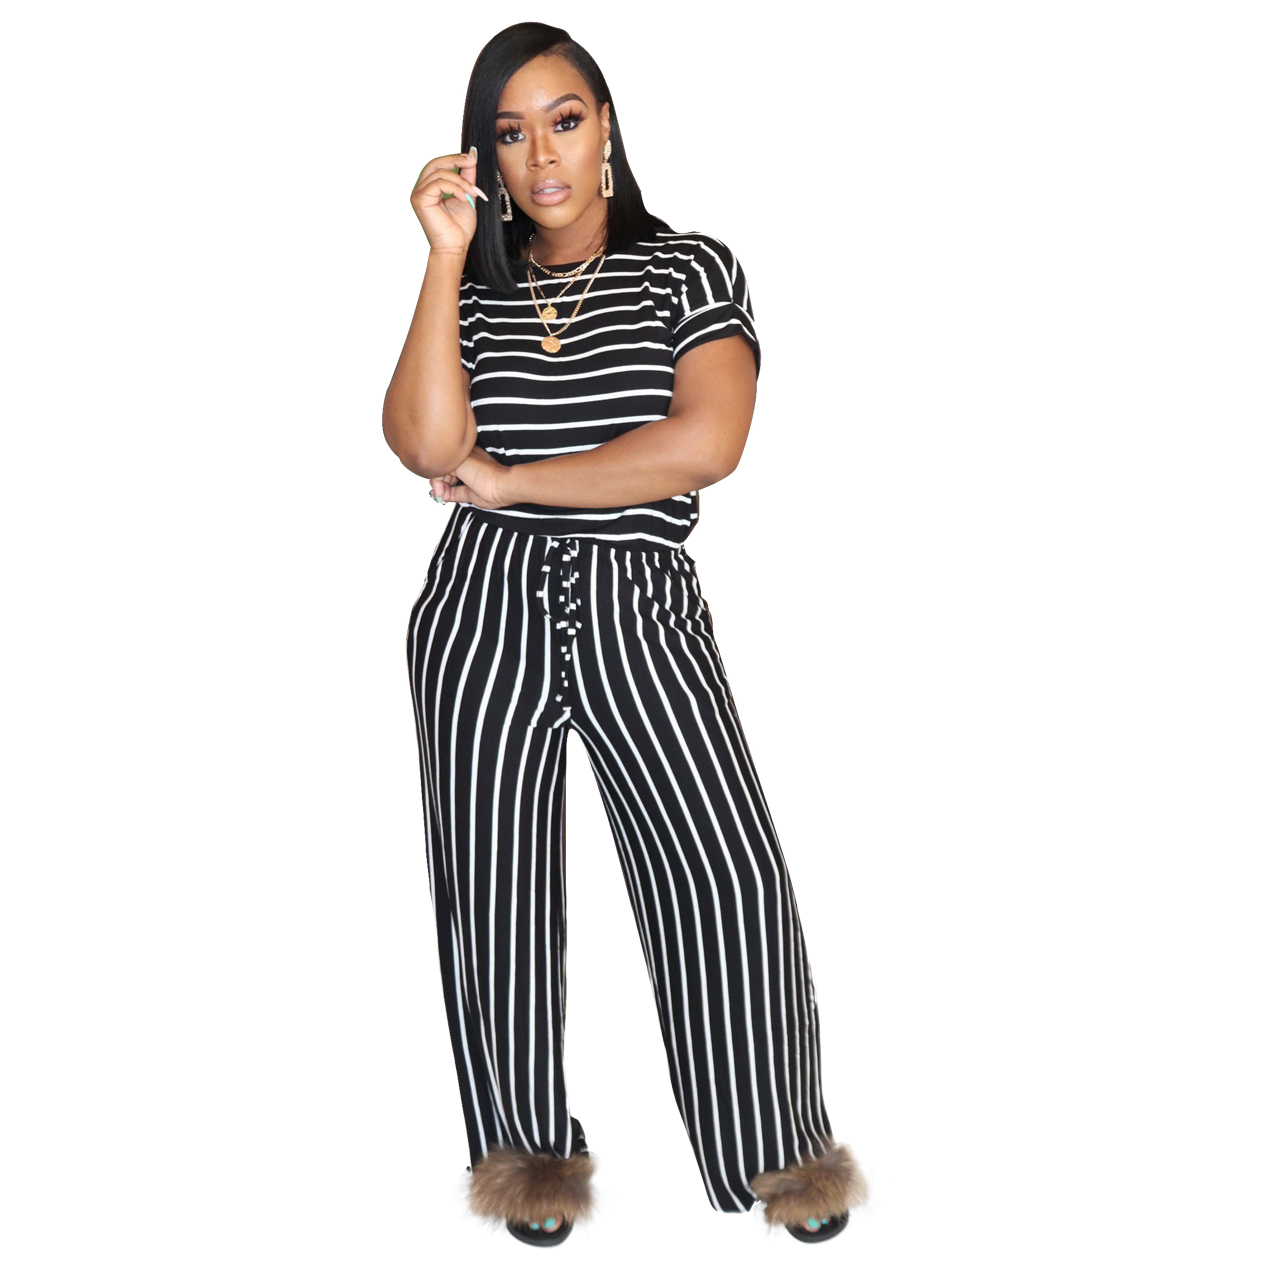 Ha4c2e6e88d42400db82231e1adad0b18n - Fashion Women Stripes Jumpsuits Summer New Arrival Short Sleeves Crew Neck Women Casual Rompers Loose Daily Wear Outfits